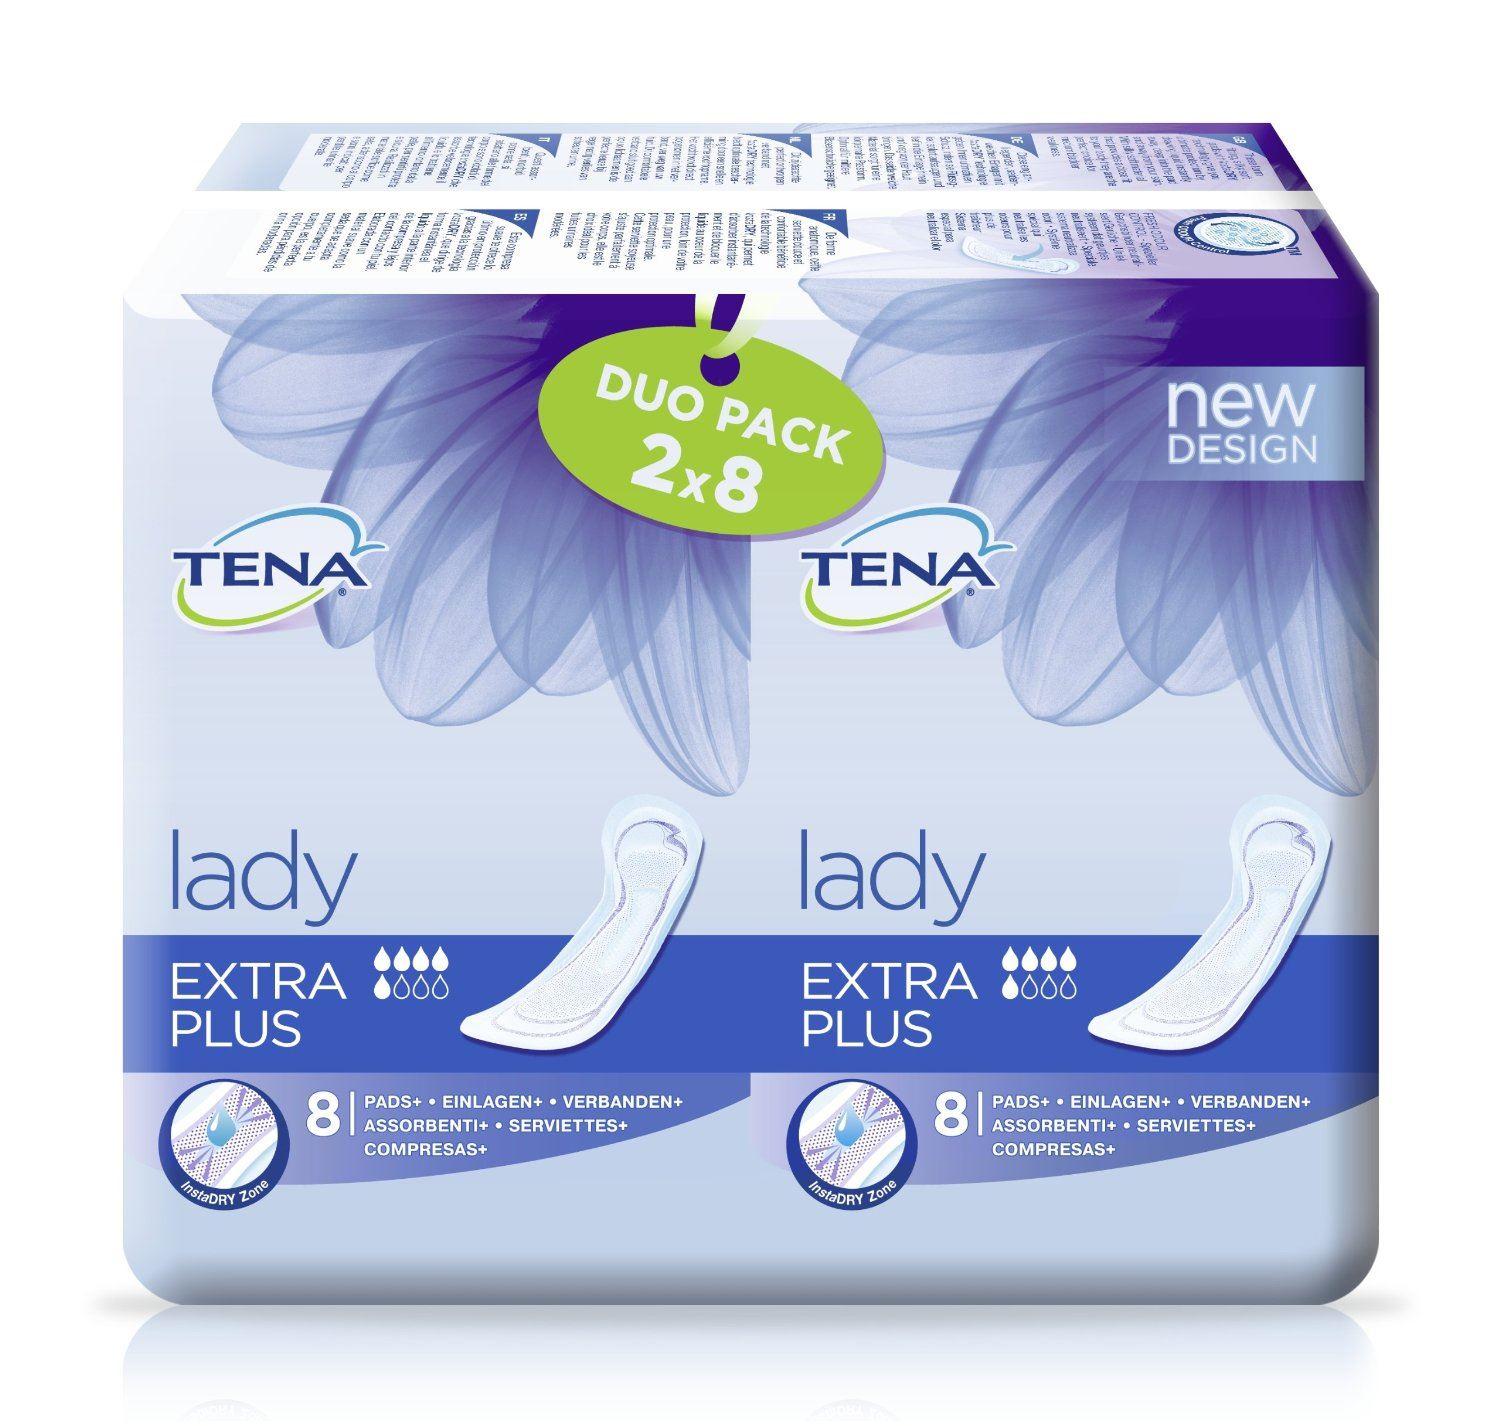 tena lady extra plus towels duo pack 6 pack ebay. Black Bedroom Furniture Sets. Home Design Ideas